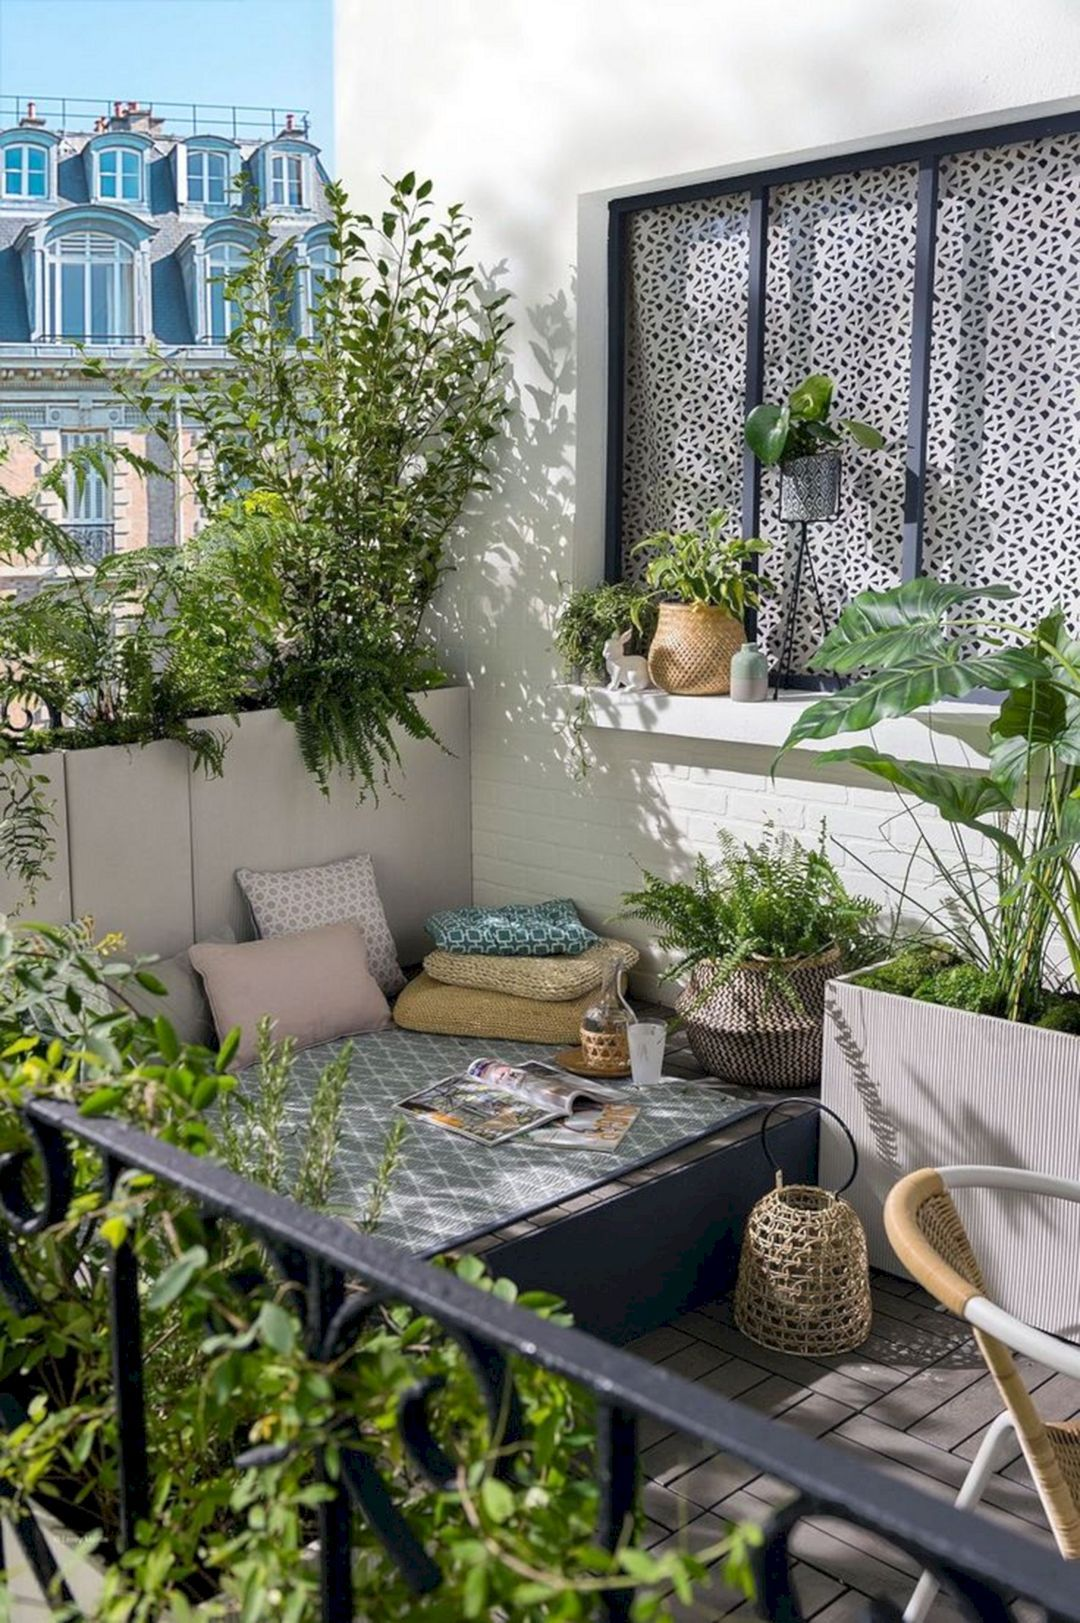 Most Creative Apartment Balcony Decoration Ideas You Must Have 10 Best Pictures Small Balcony Design Apartment Balcony Garden Small Balcony Garden